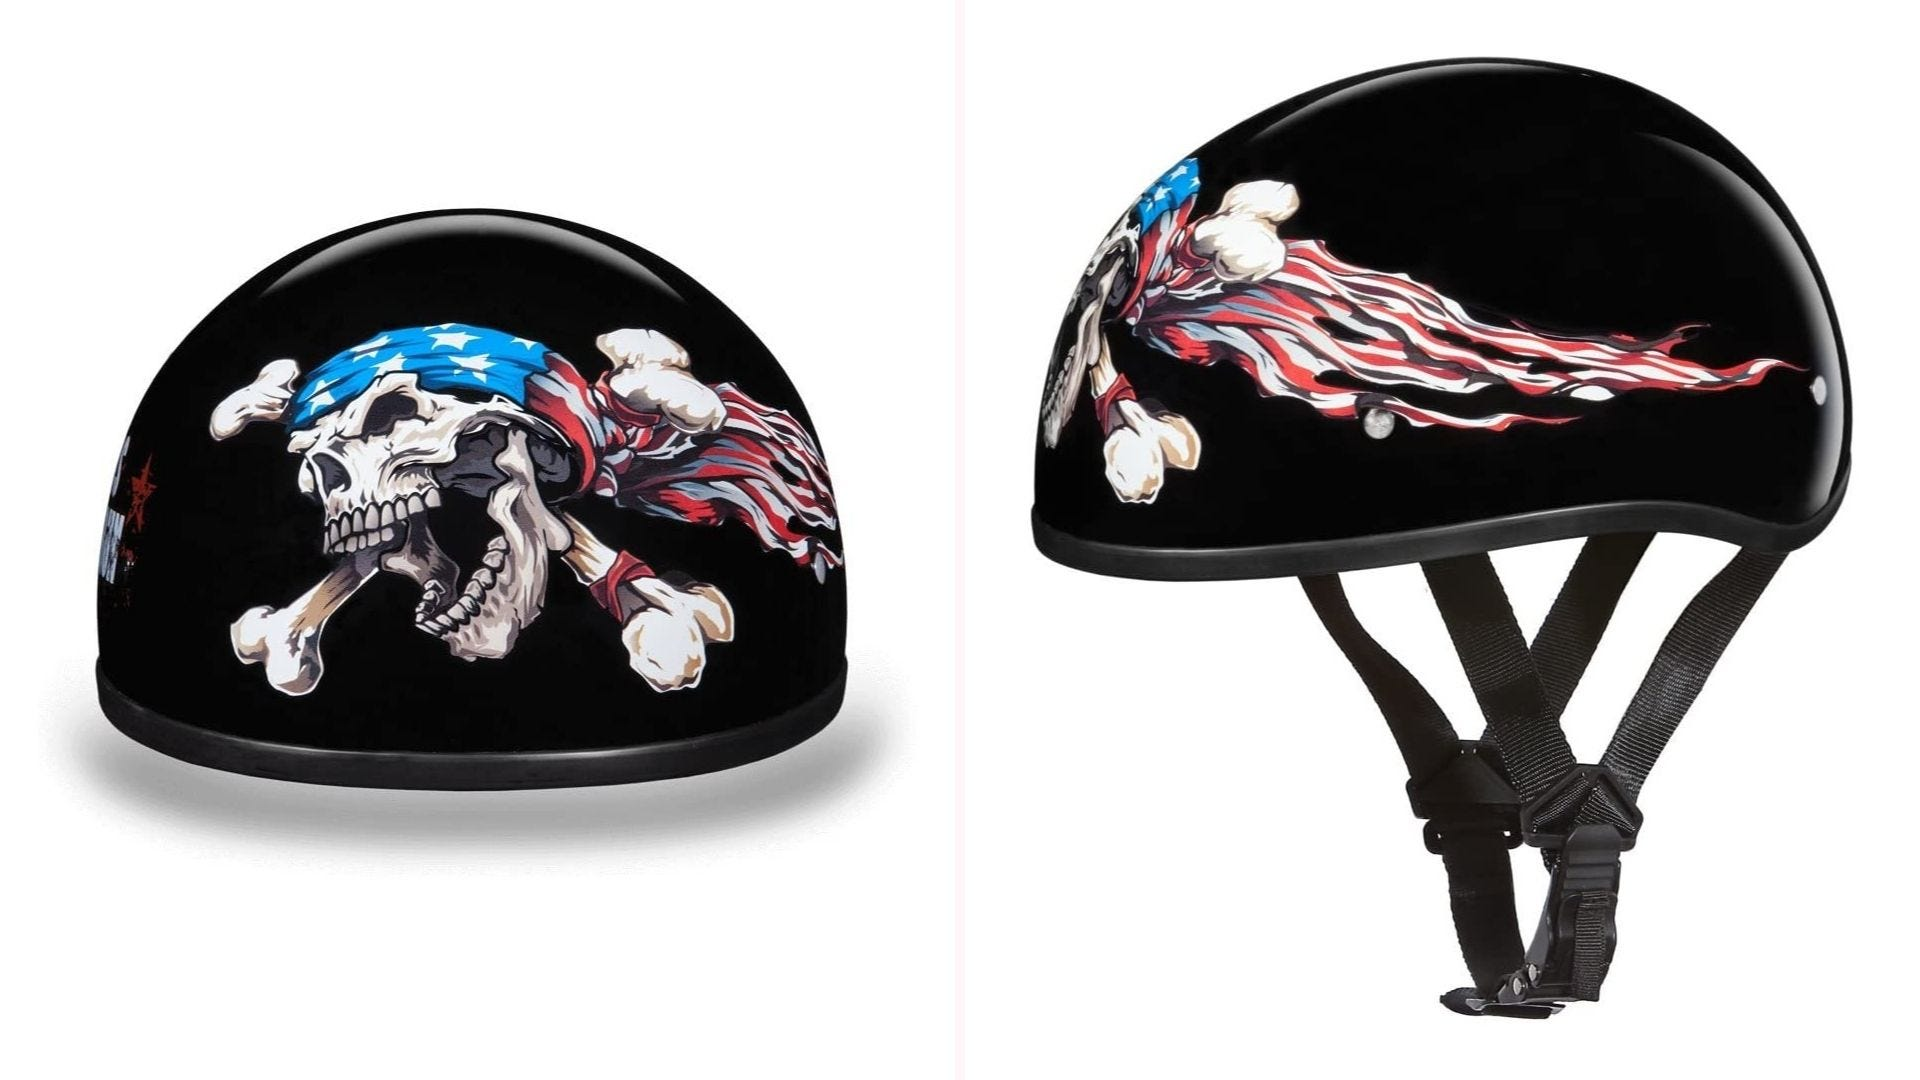 A front and side view of a hi-gloss black helmet with a skull and crossbones, which is wrapped in the flag of the United States.